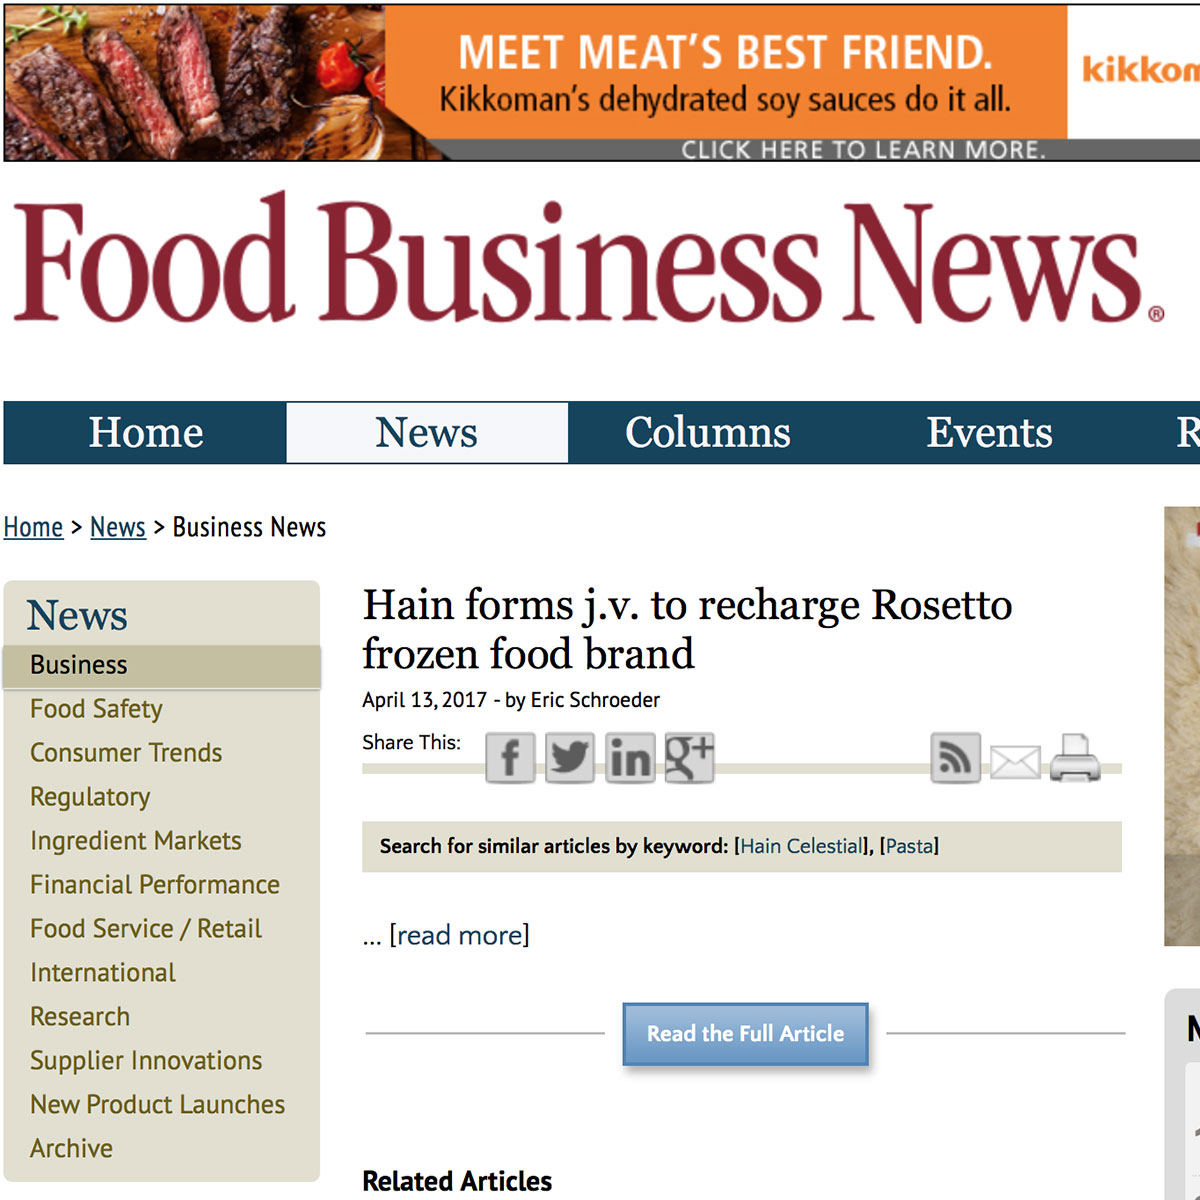 Hain Forms J.V. To Recharge Rosetto Frozen Food Brand - Marty Sands